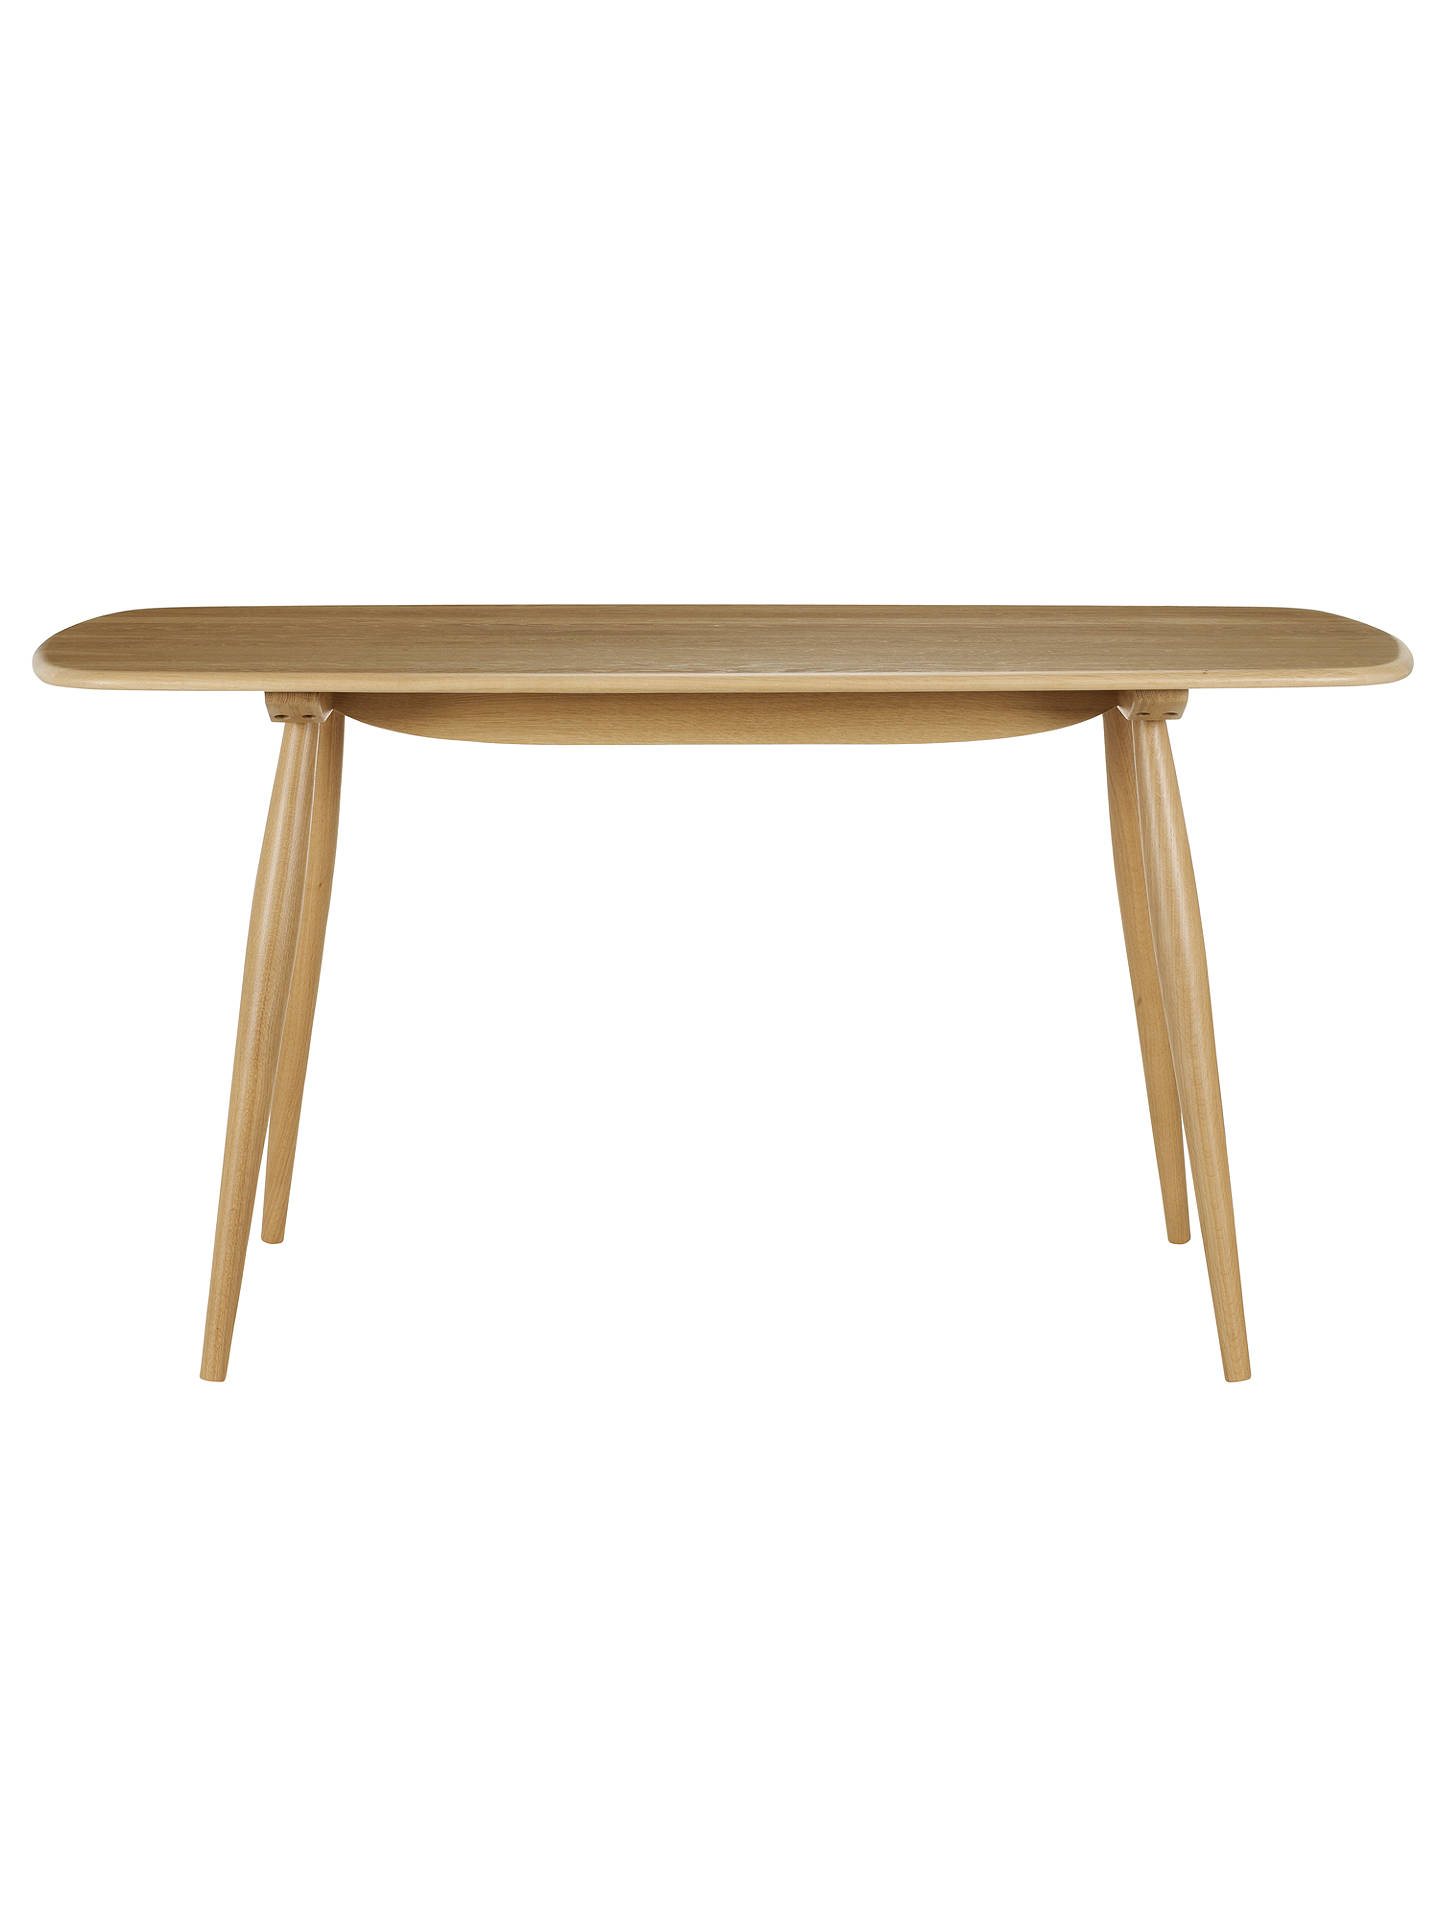 Ercol For John Lewis Chiltern 4 Seater Dining Table Oak Online At Johnlewis